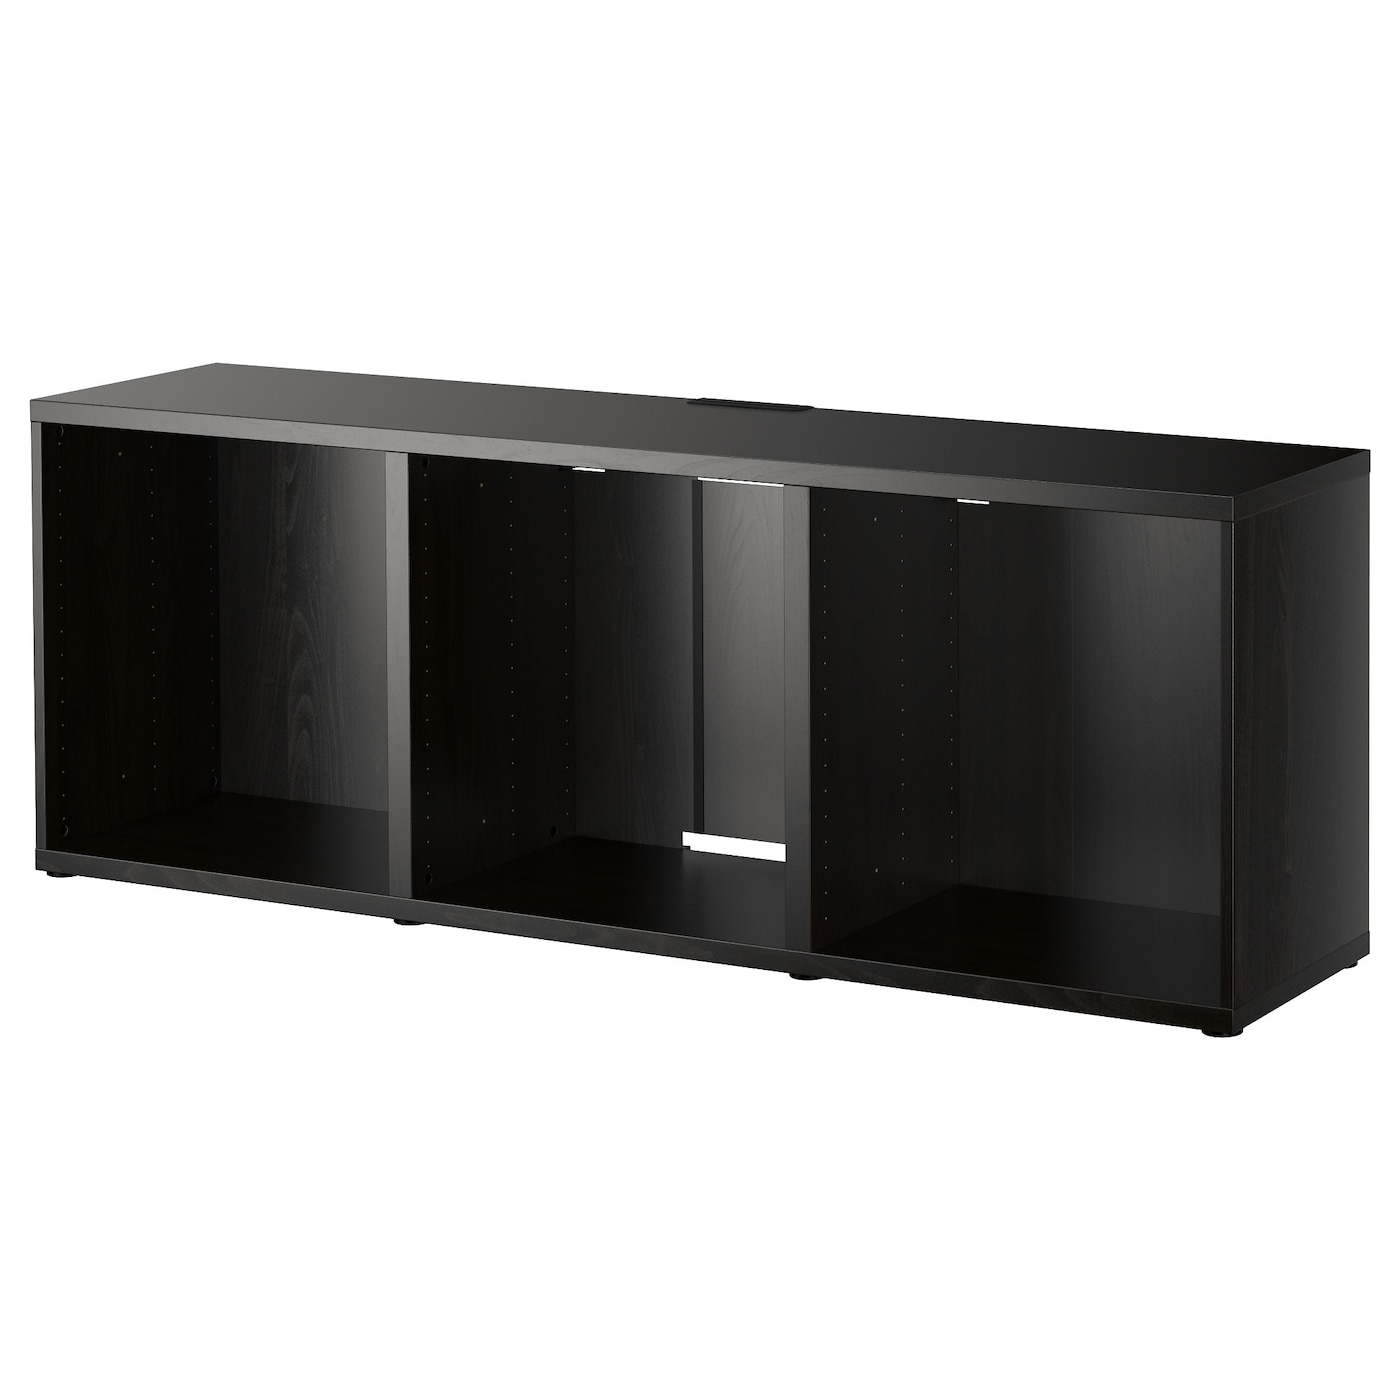 best banc tv brun noir 180 x 40 x 64 cm ikea. Black Bedroom Furniture Sets. Home Design Ideas